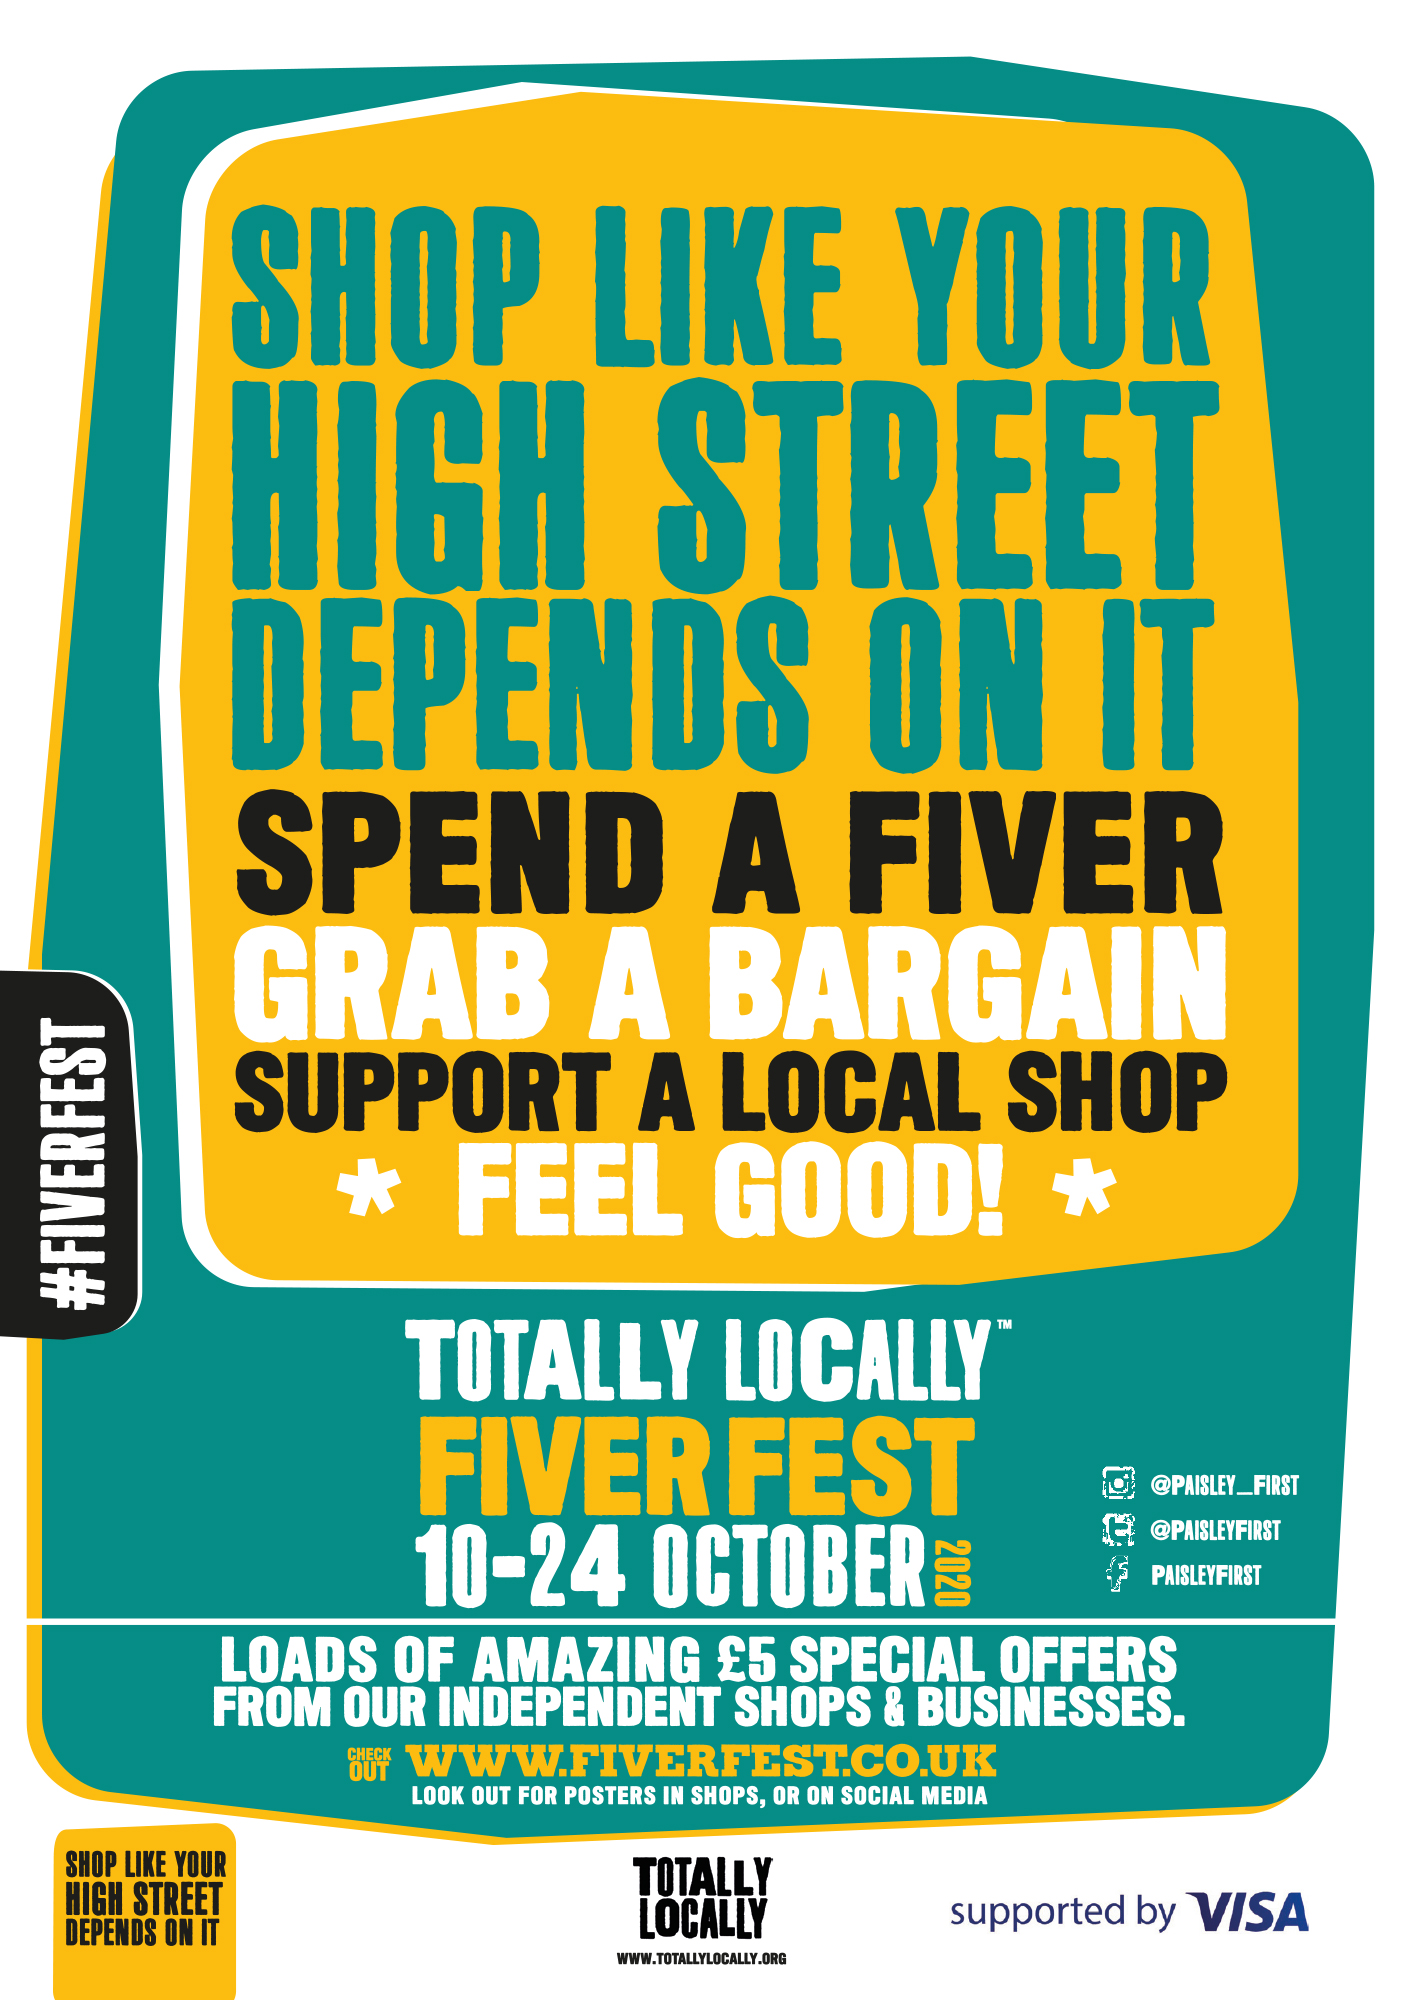 Paisley-First-October-Fiverfest